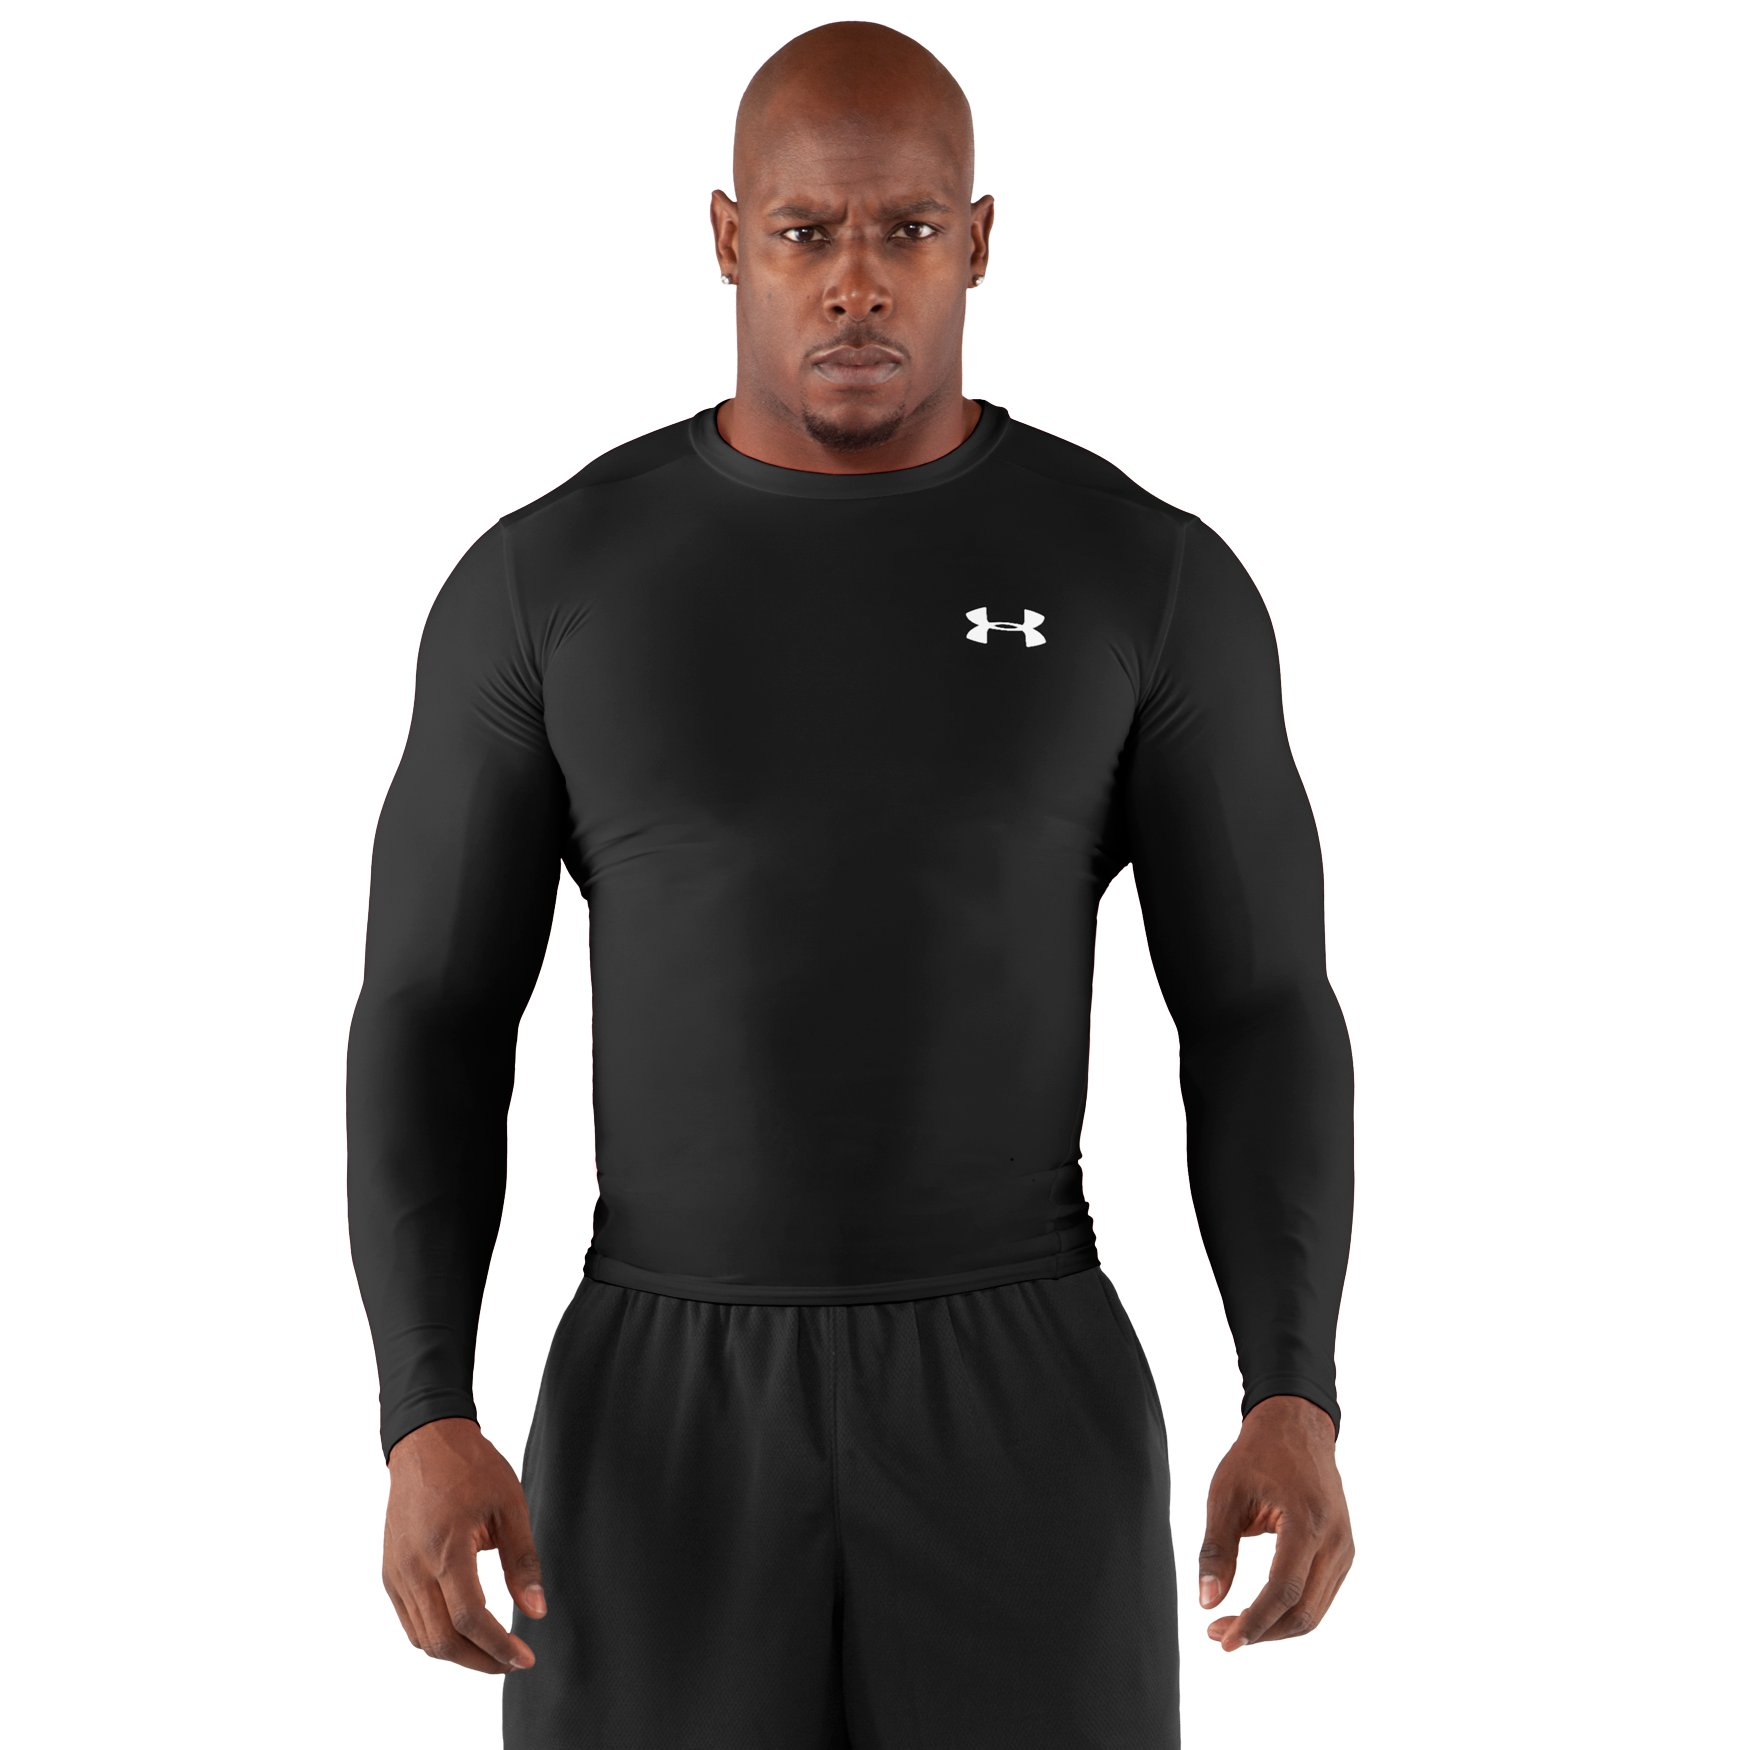 Wanda asks about men 39 s heatgear compression longsleeve t for Compression tee shirts for men